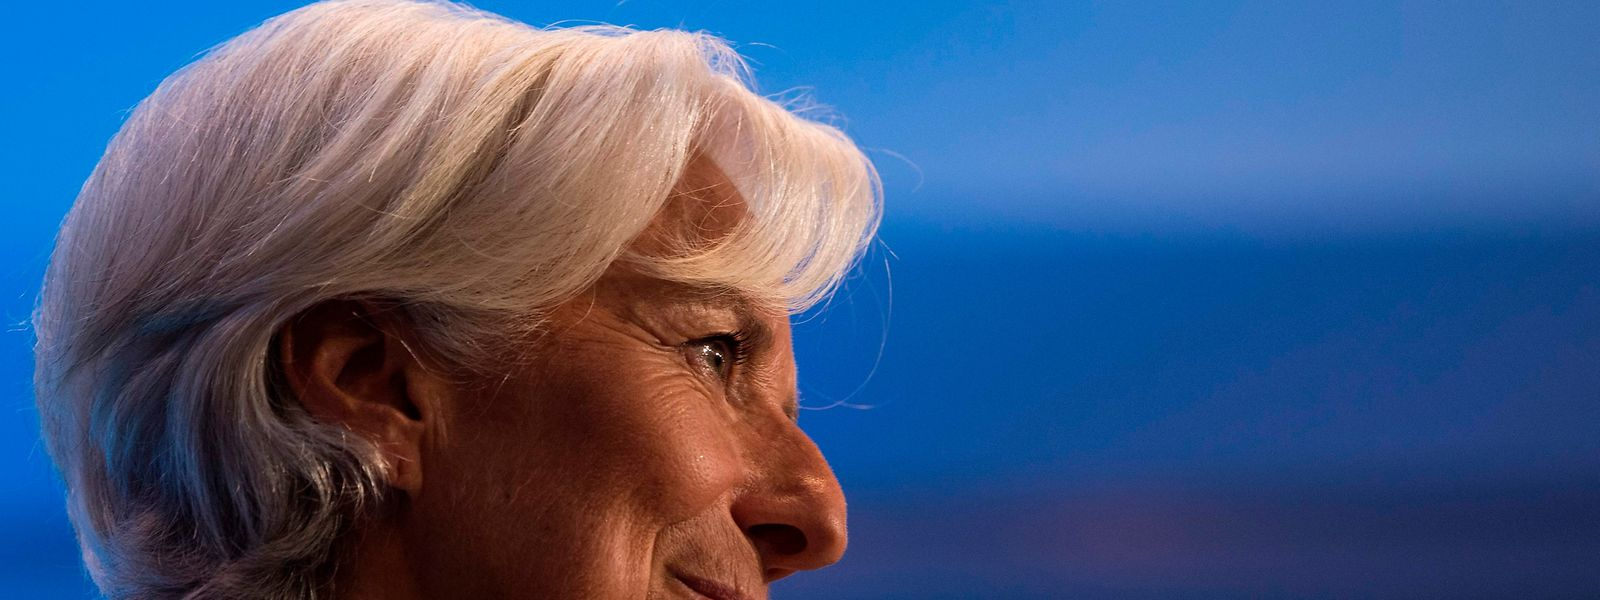 Christine Lagarde, managing director of the International Monetary Fund (IMF), speaks during the 2018 Michel Camdessus Central Bankin Lecture at the IMF headquarters  in Washington, DC on September 6, 2018. (Photo by ANDREW CABALLERO-REYNOLDS / AFP)